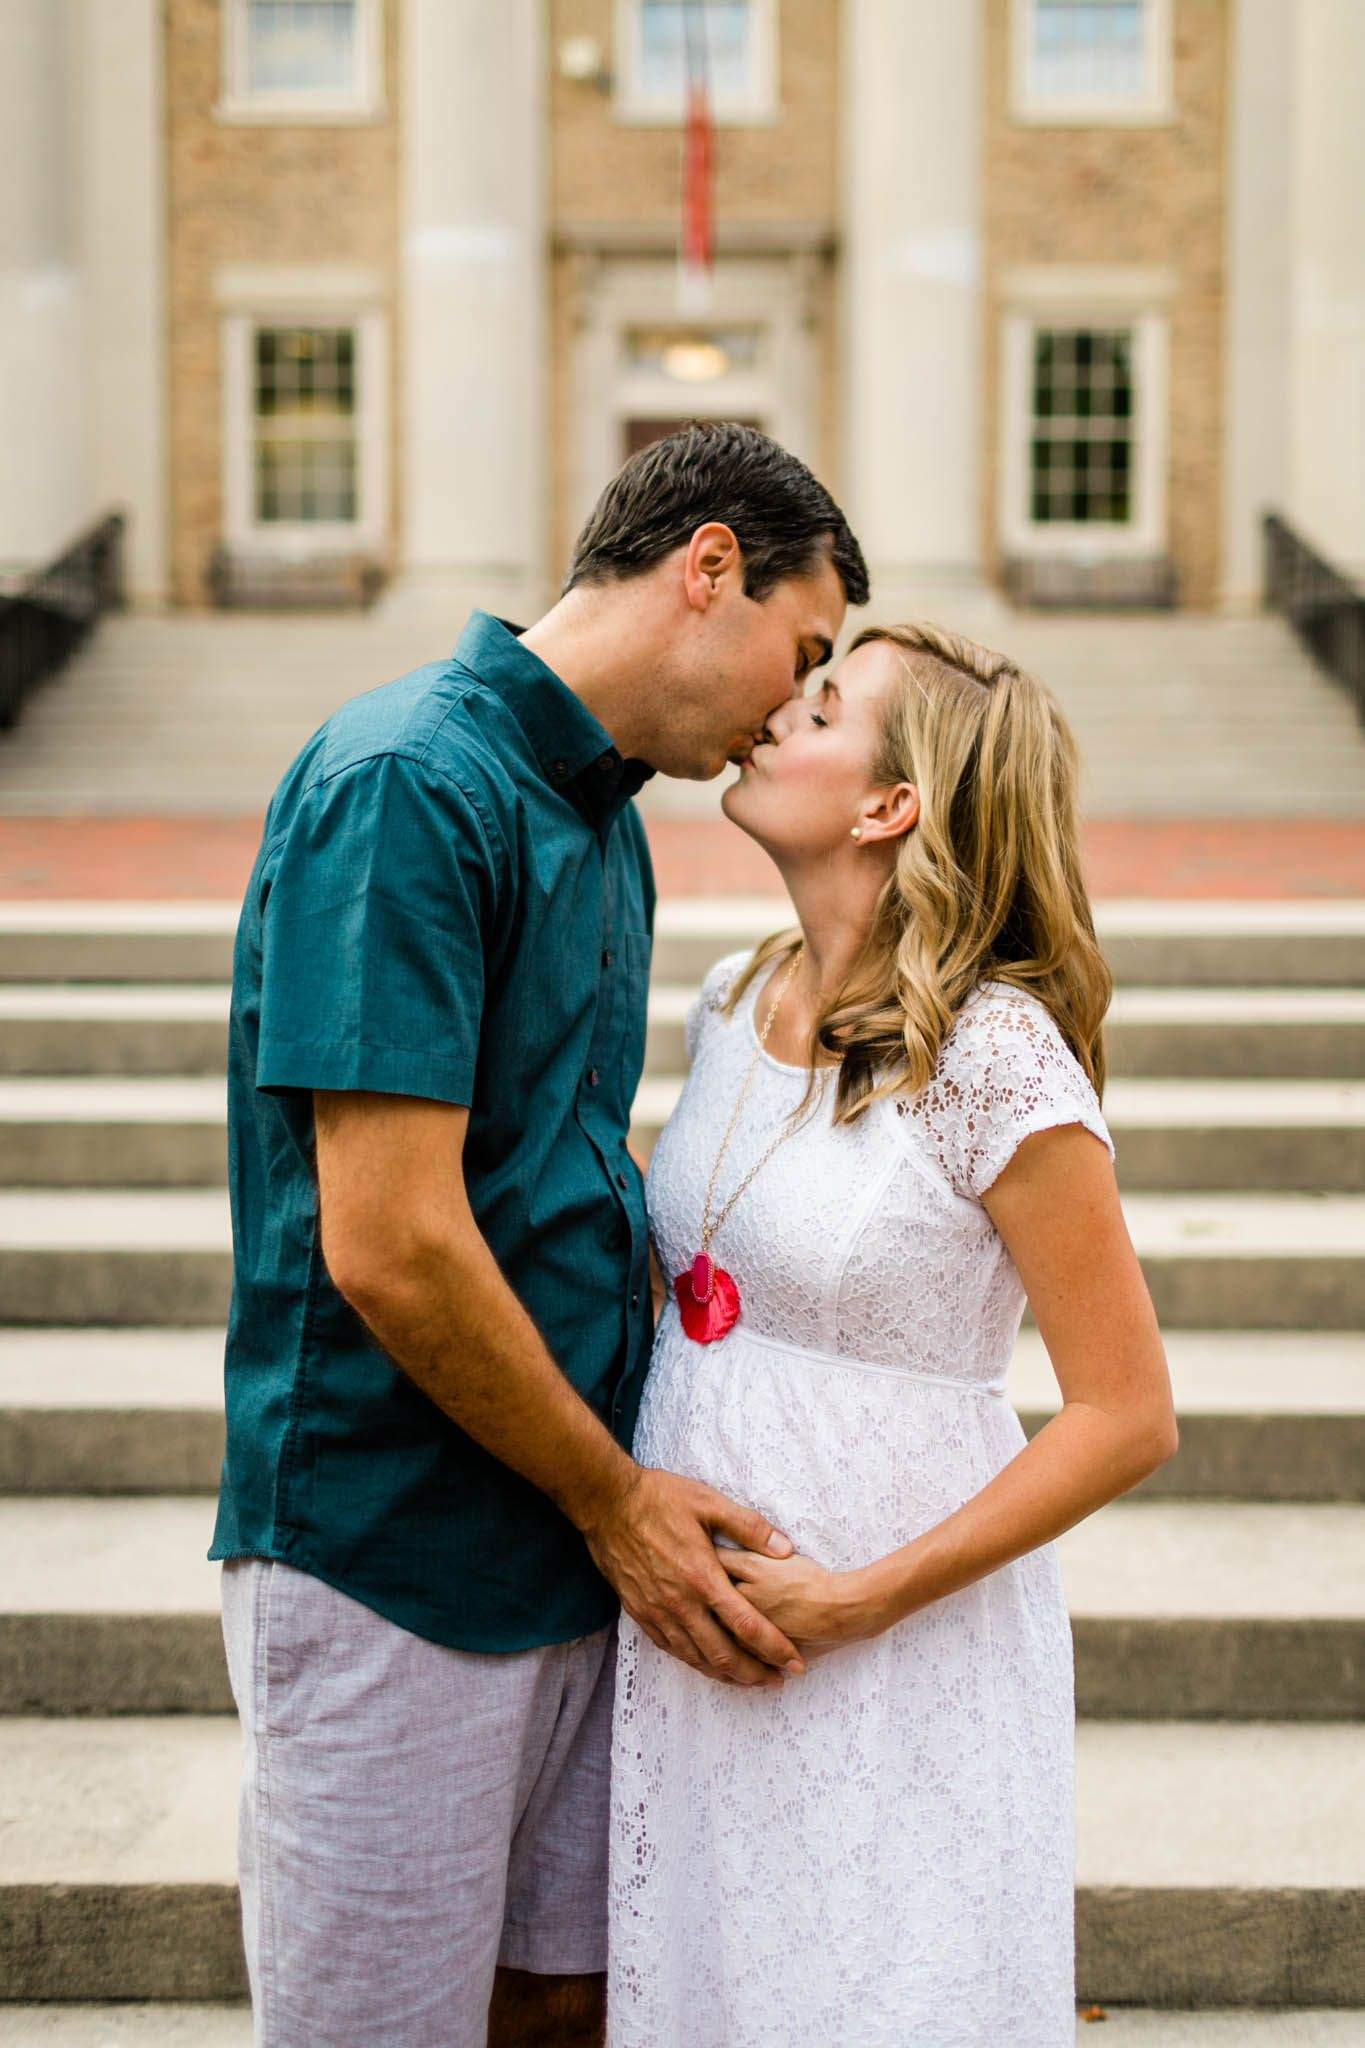 Pin On Maternity Photography